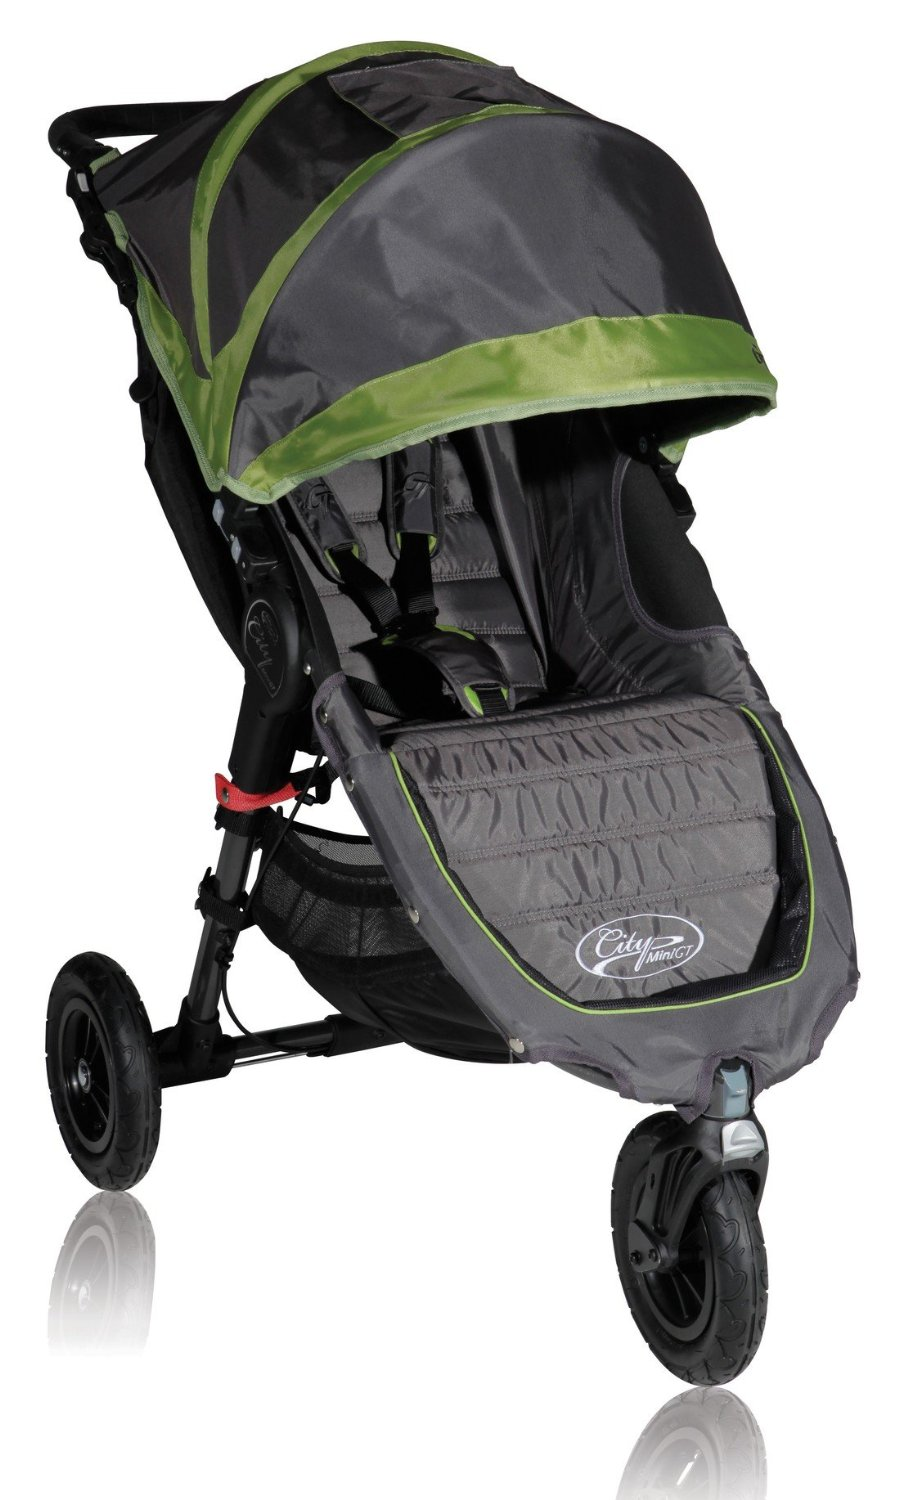 best-jogging-stroller-2014-baby-jogger-city-mini-gt-single-stroller